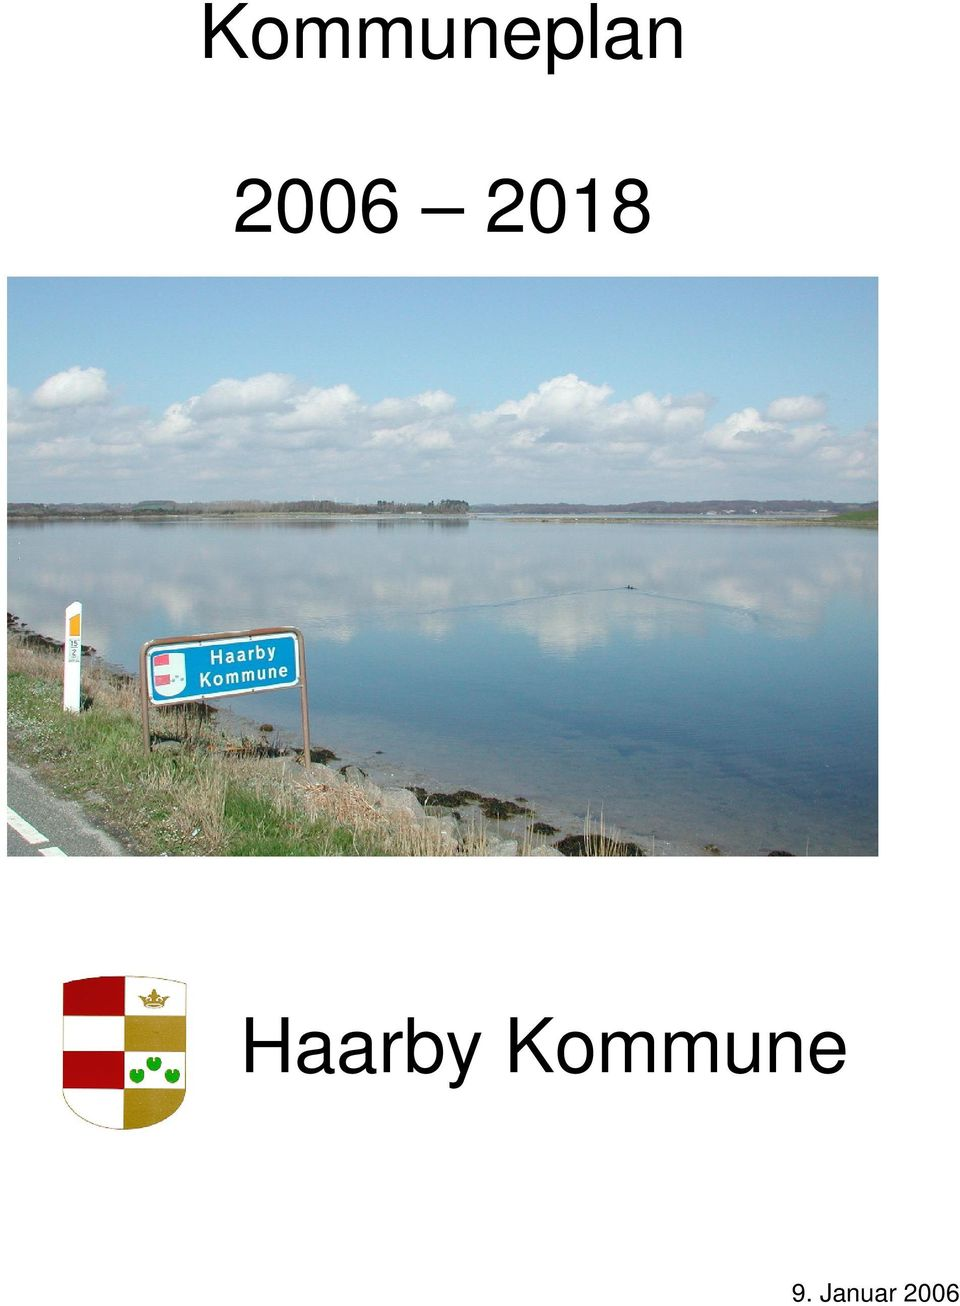 Haarby